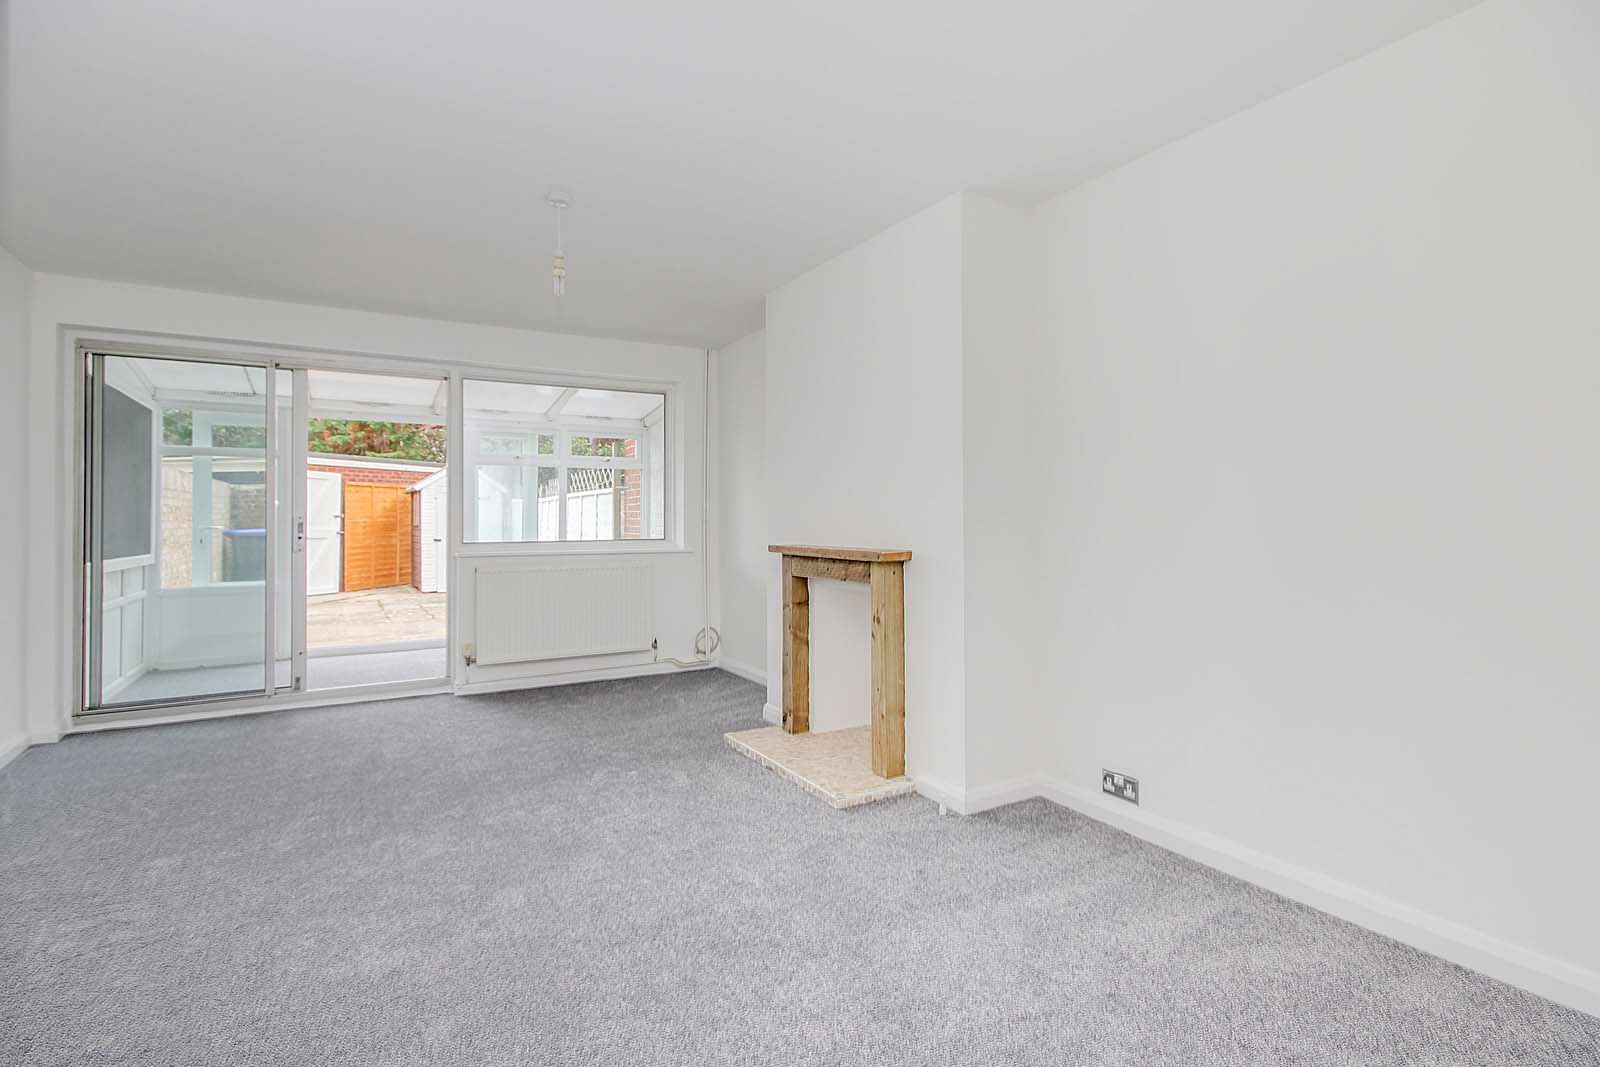 2 bed house for sale in Church Way COMP Jan 2019  - Property Image 2